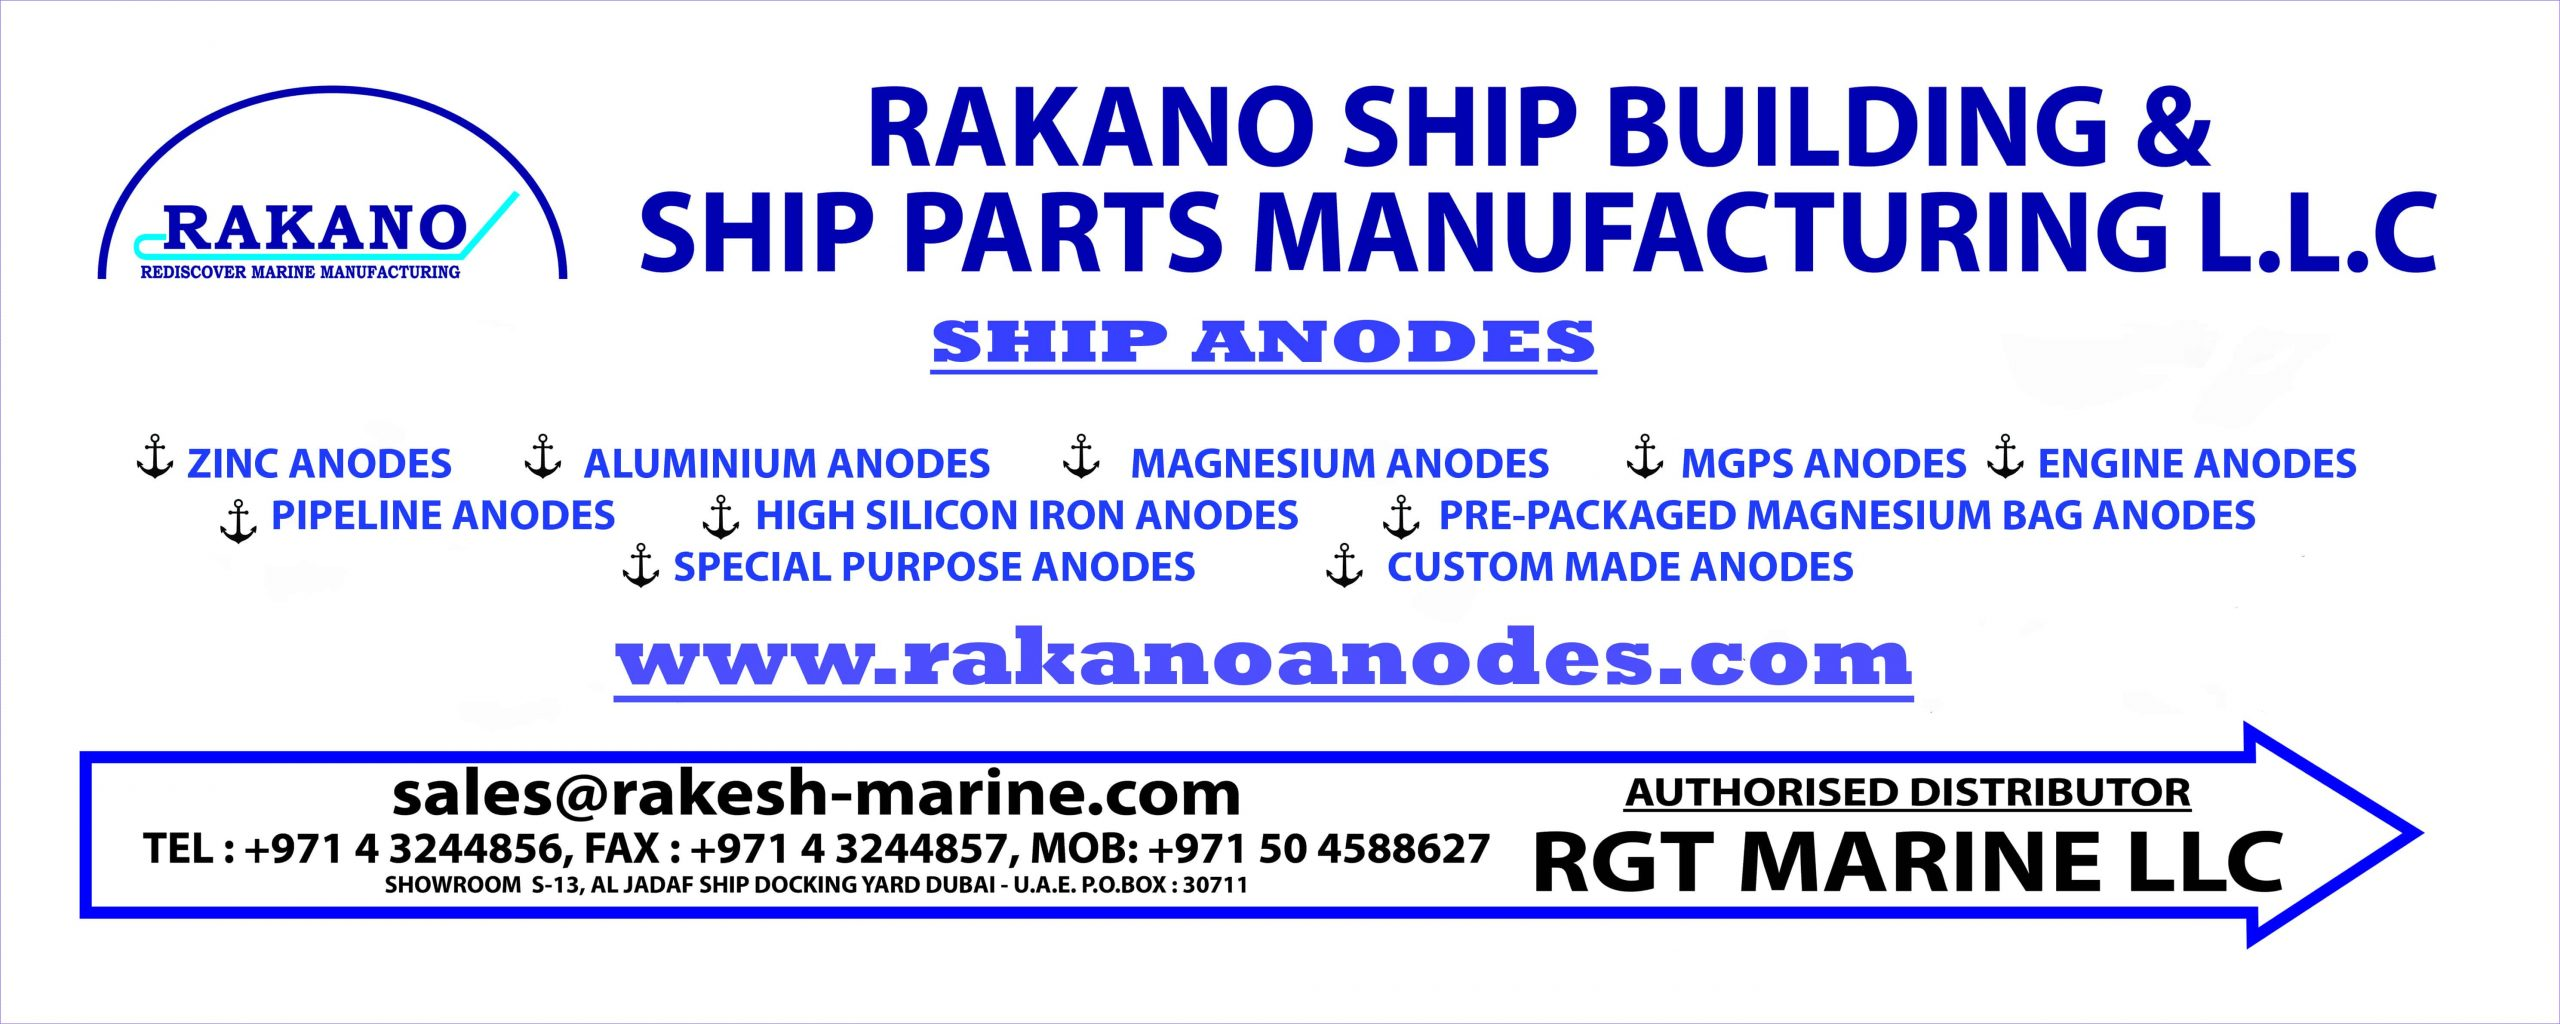 RAKANO SHIP BUILDING & SHIP PARTS MANUFACTURING LLC